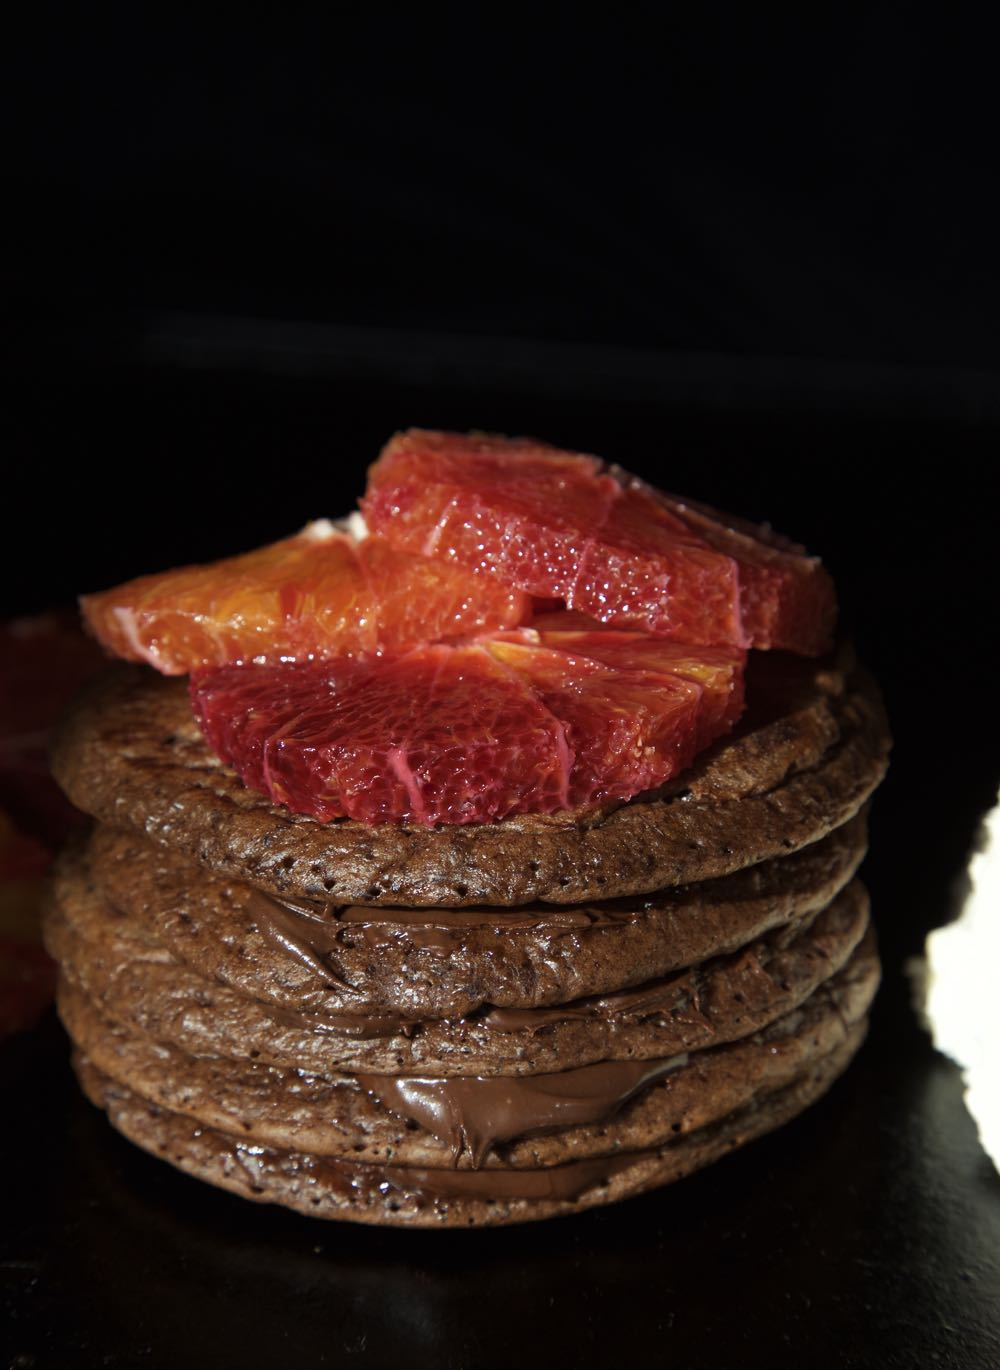 Chocolate Orange Pancakes with Chocolate Hazelnut Spread, Blood Oranges and Orange Blossom Cream